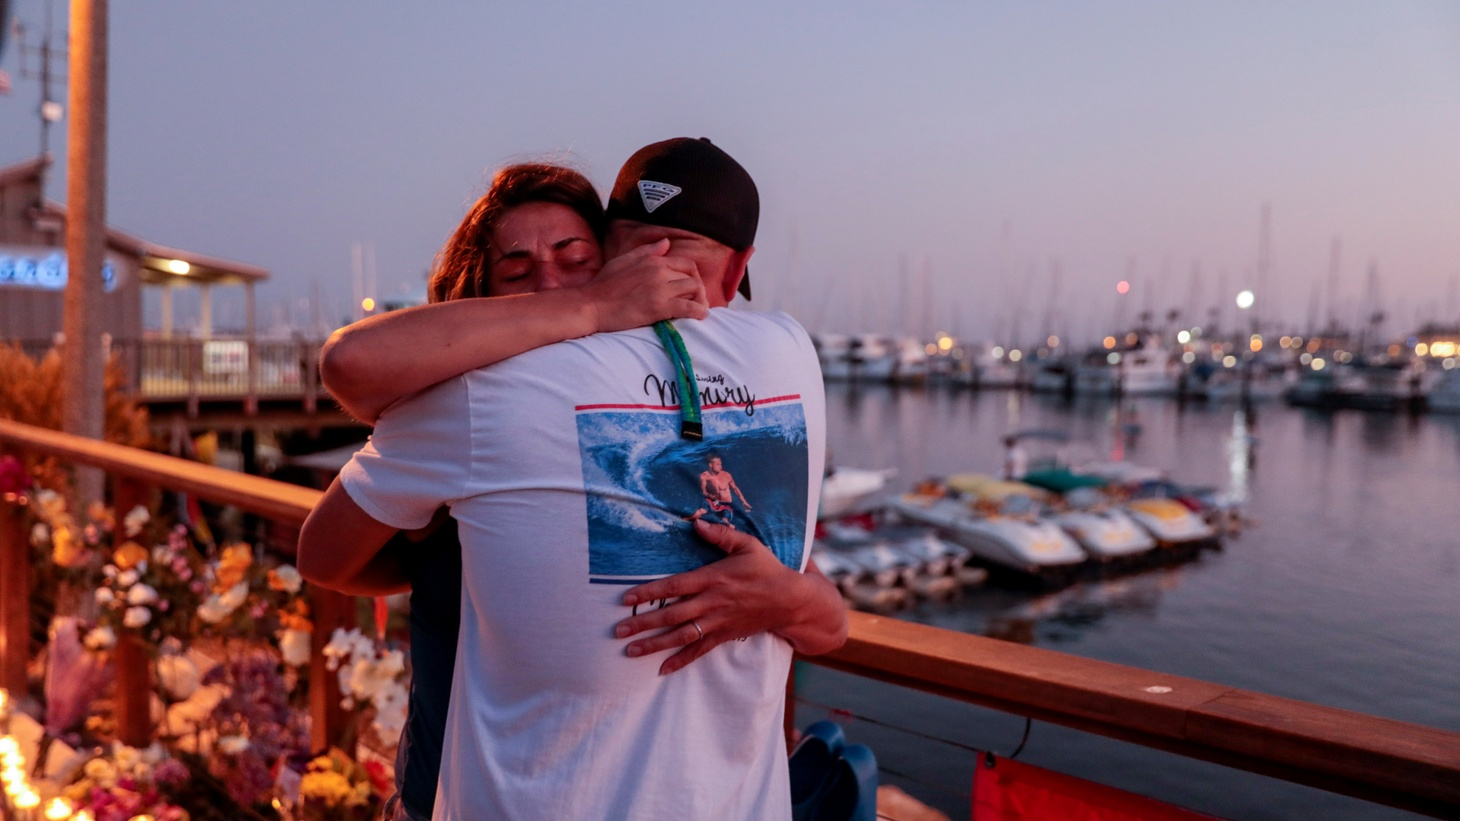 JJ Lambert and Jenna Marsala hug after hanging a scuba flag at a makeshift memorial near Truth Aquatics as the search continues for those missing in a pre-dawn fire that sank a commercial diving boat off a Southern California island near Santa Barbara, California, U.S., September 2, 2019.